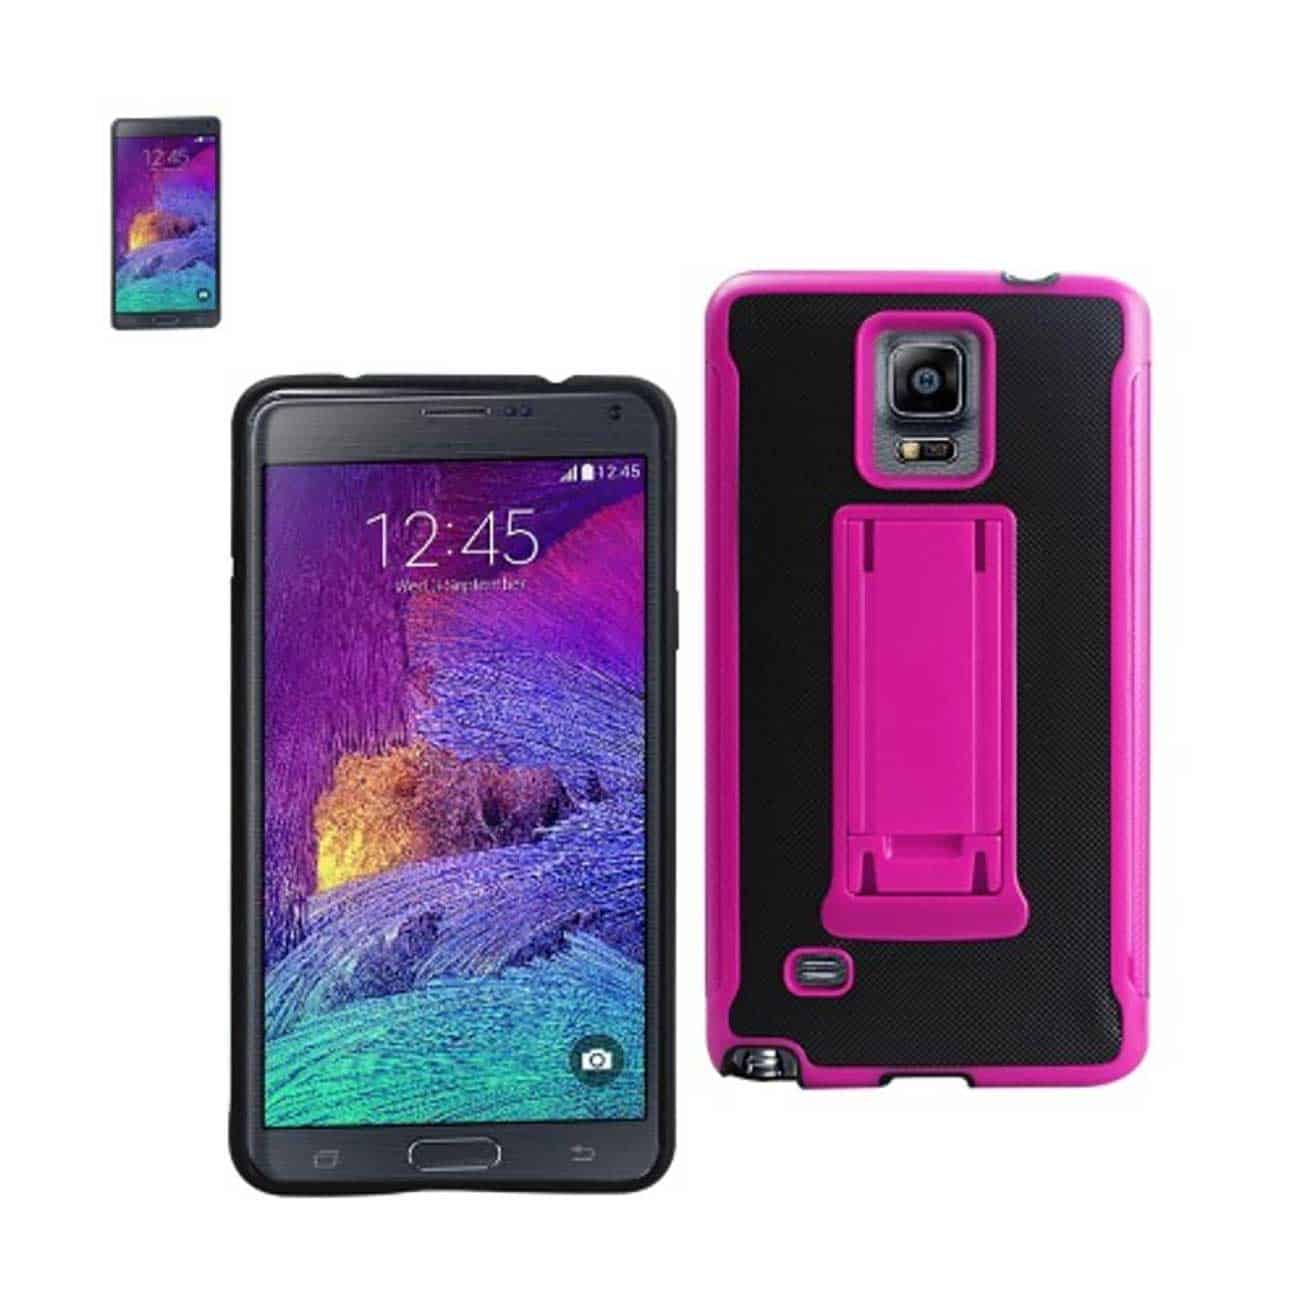 SAMSUNG GALAXY NOTE 4 HYBRID HEAVY DUTY CASE WITH VERTICAL KICKSTAND IN BLACK HOT PINK